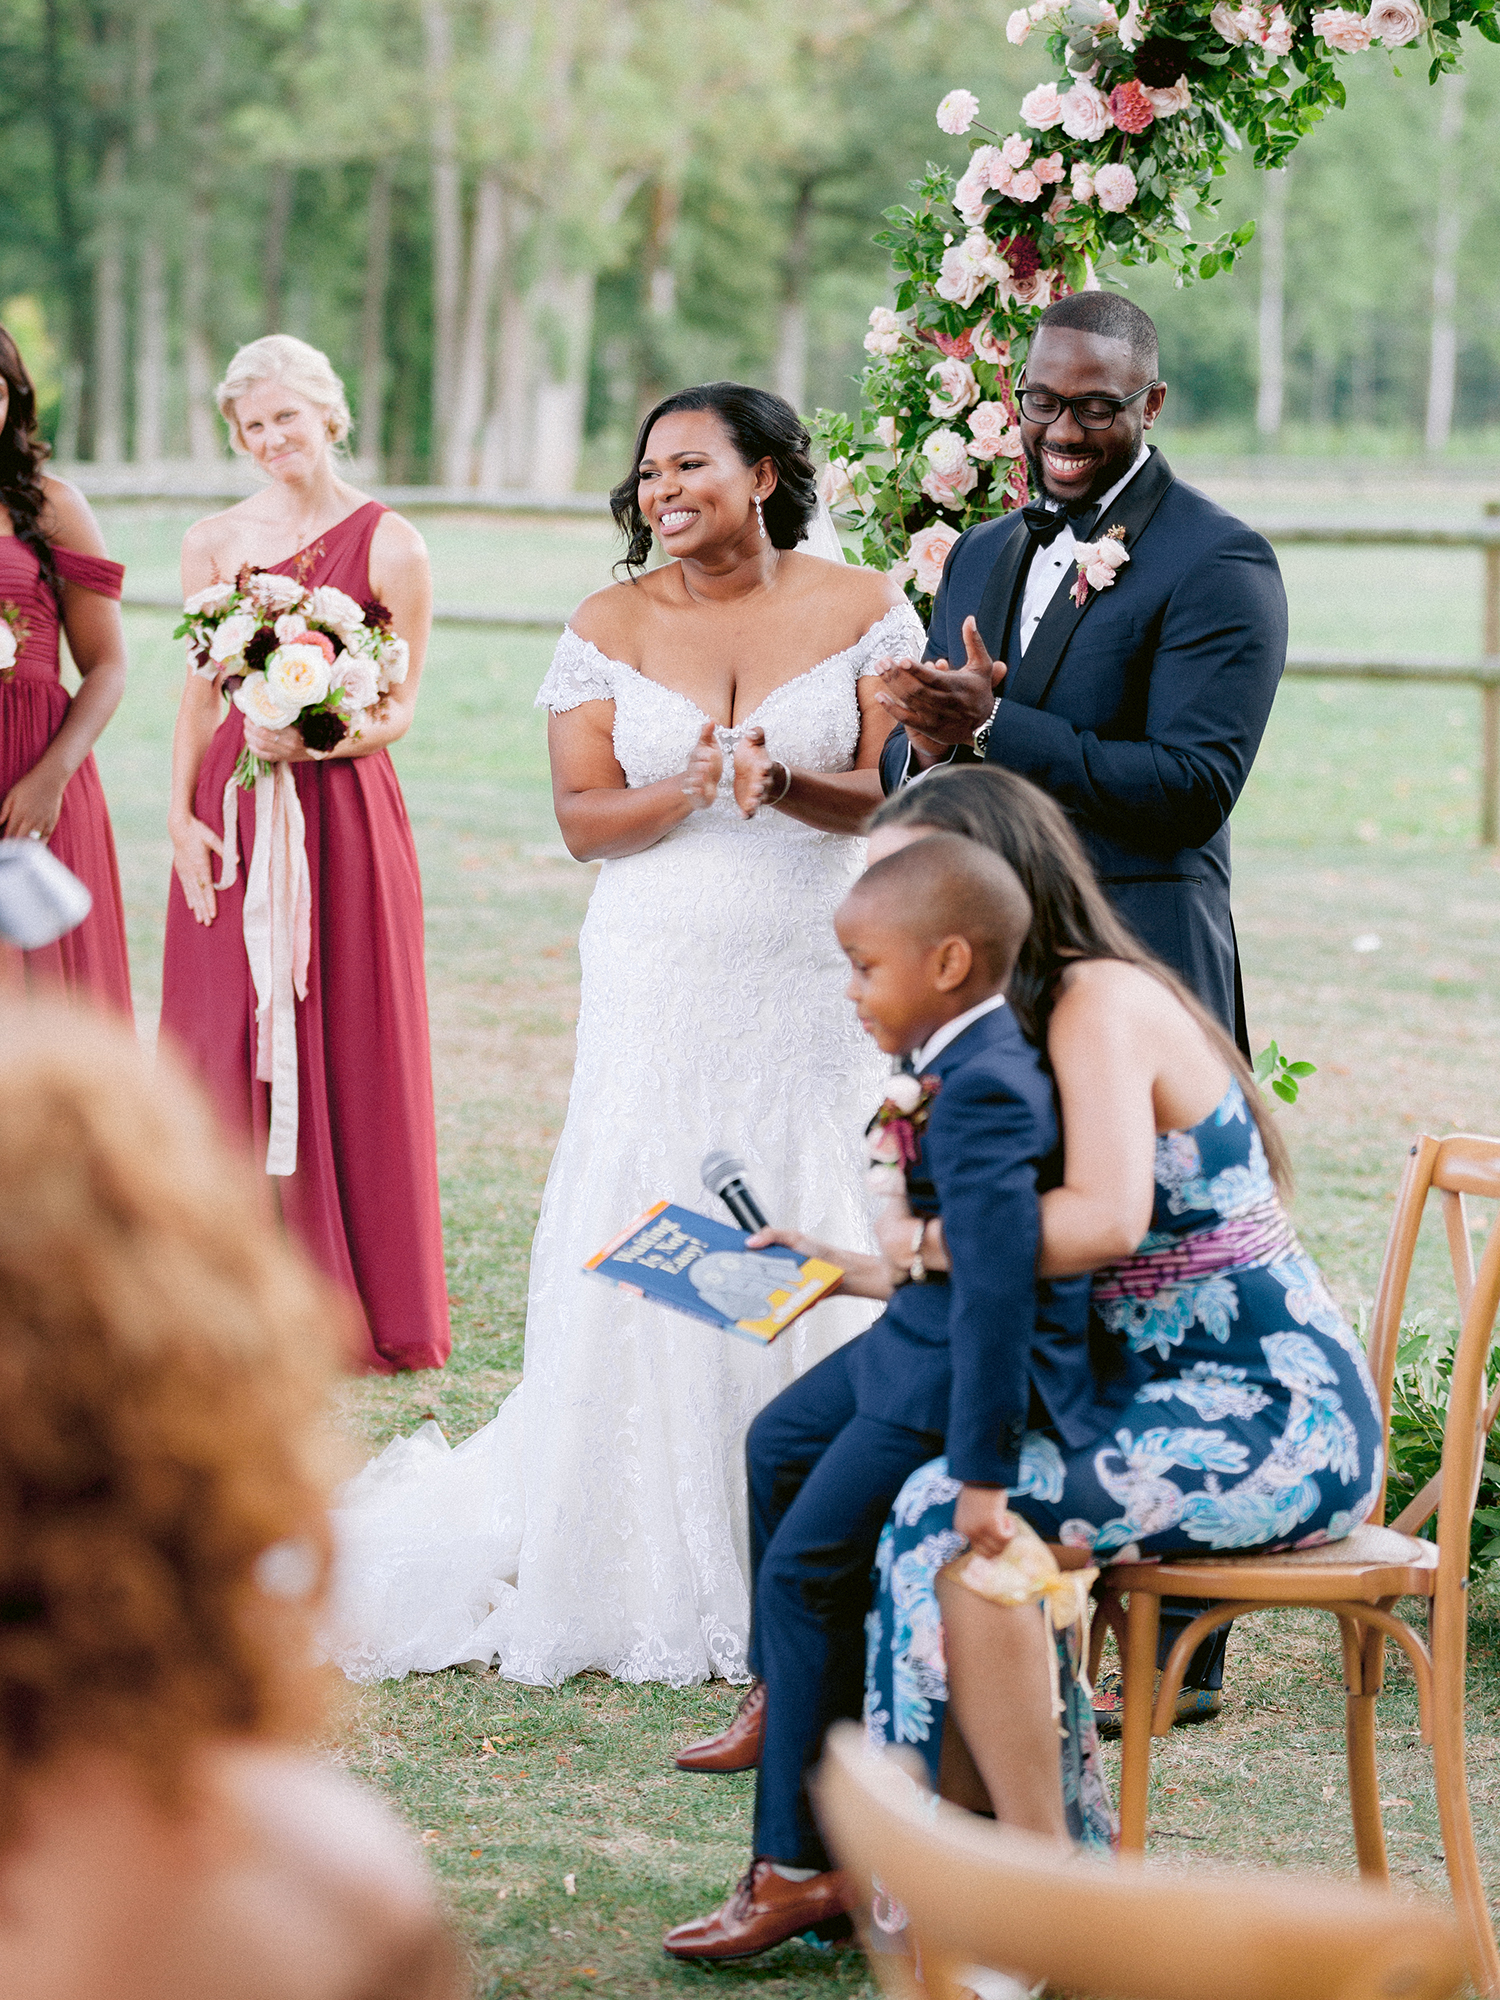 Six Things to Consider Before Choosing a Young Ceremony Reader